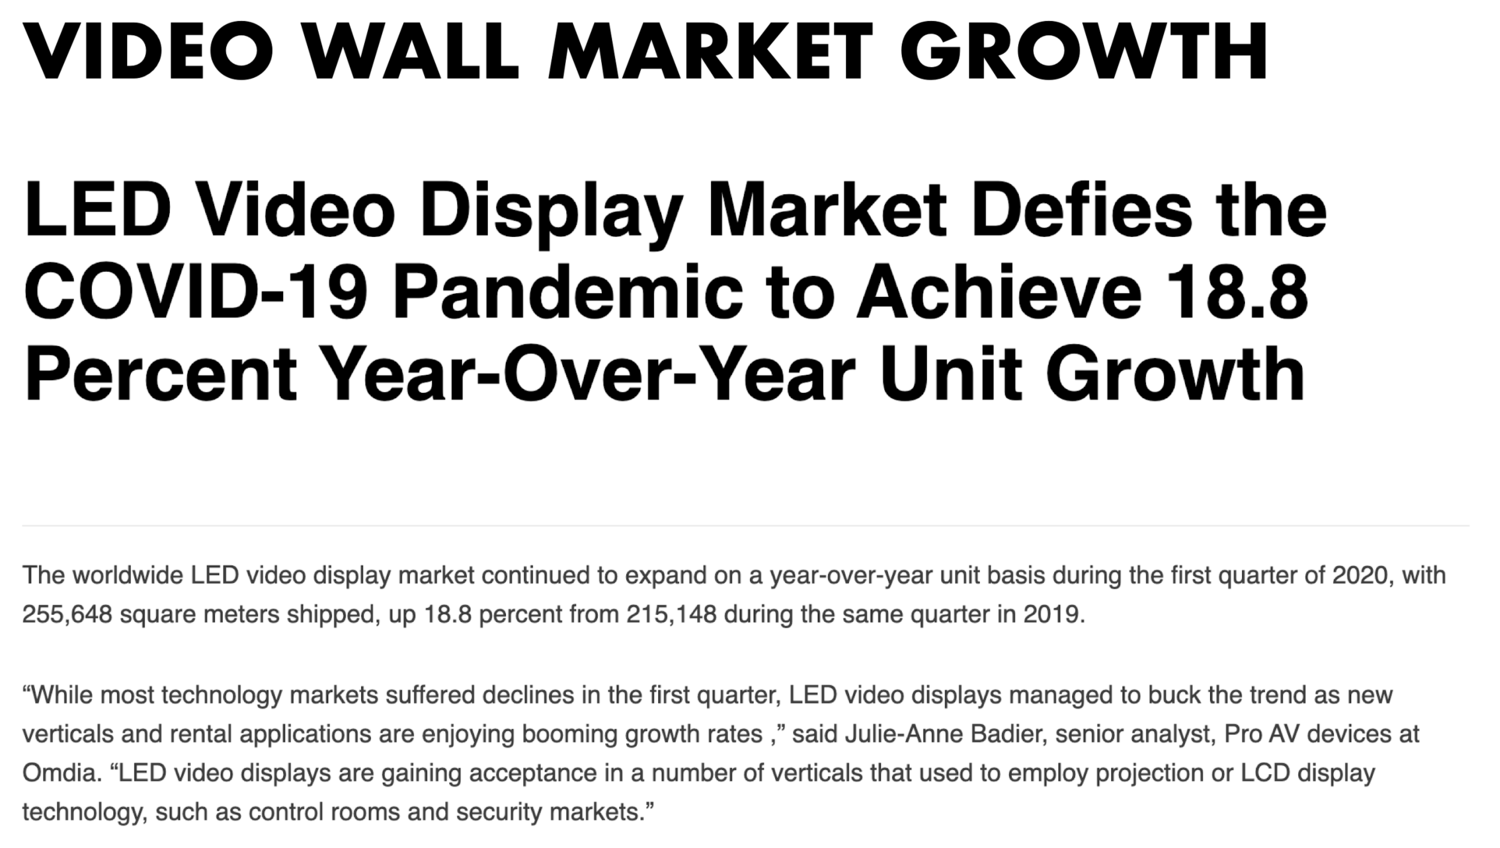 Figure 17: Display Daily Market report highlighting video wall market growth during COVID pandemic [38]